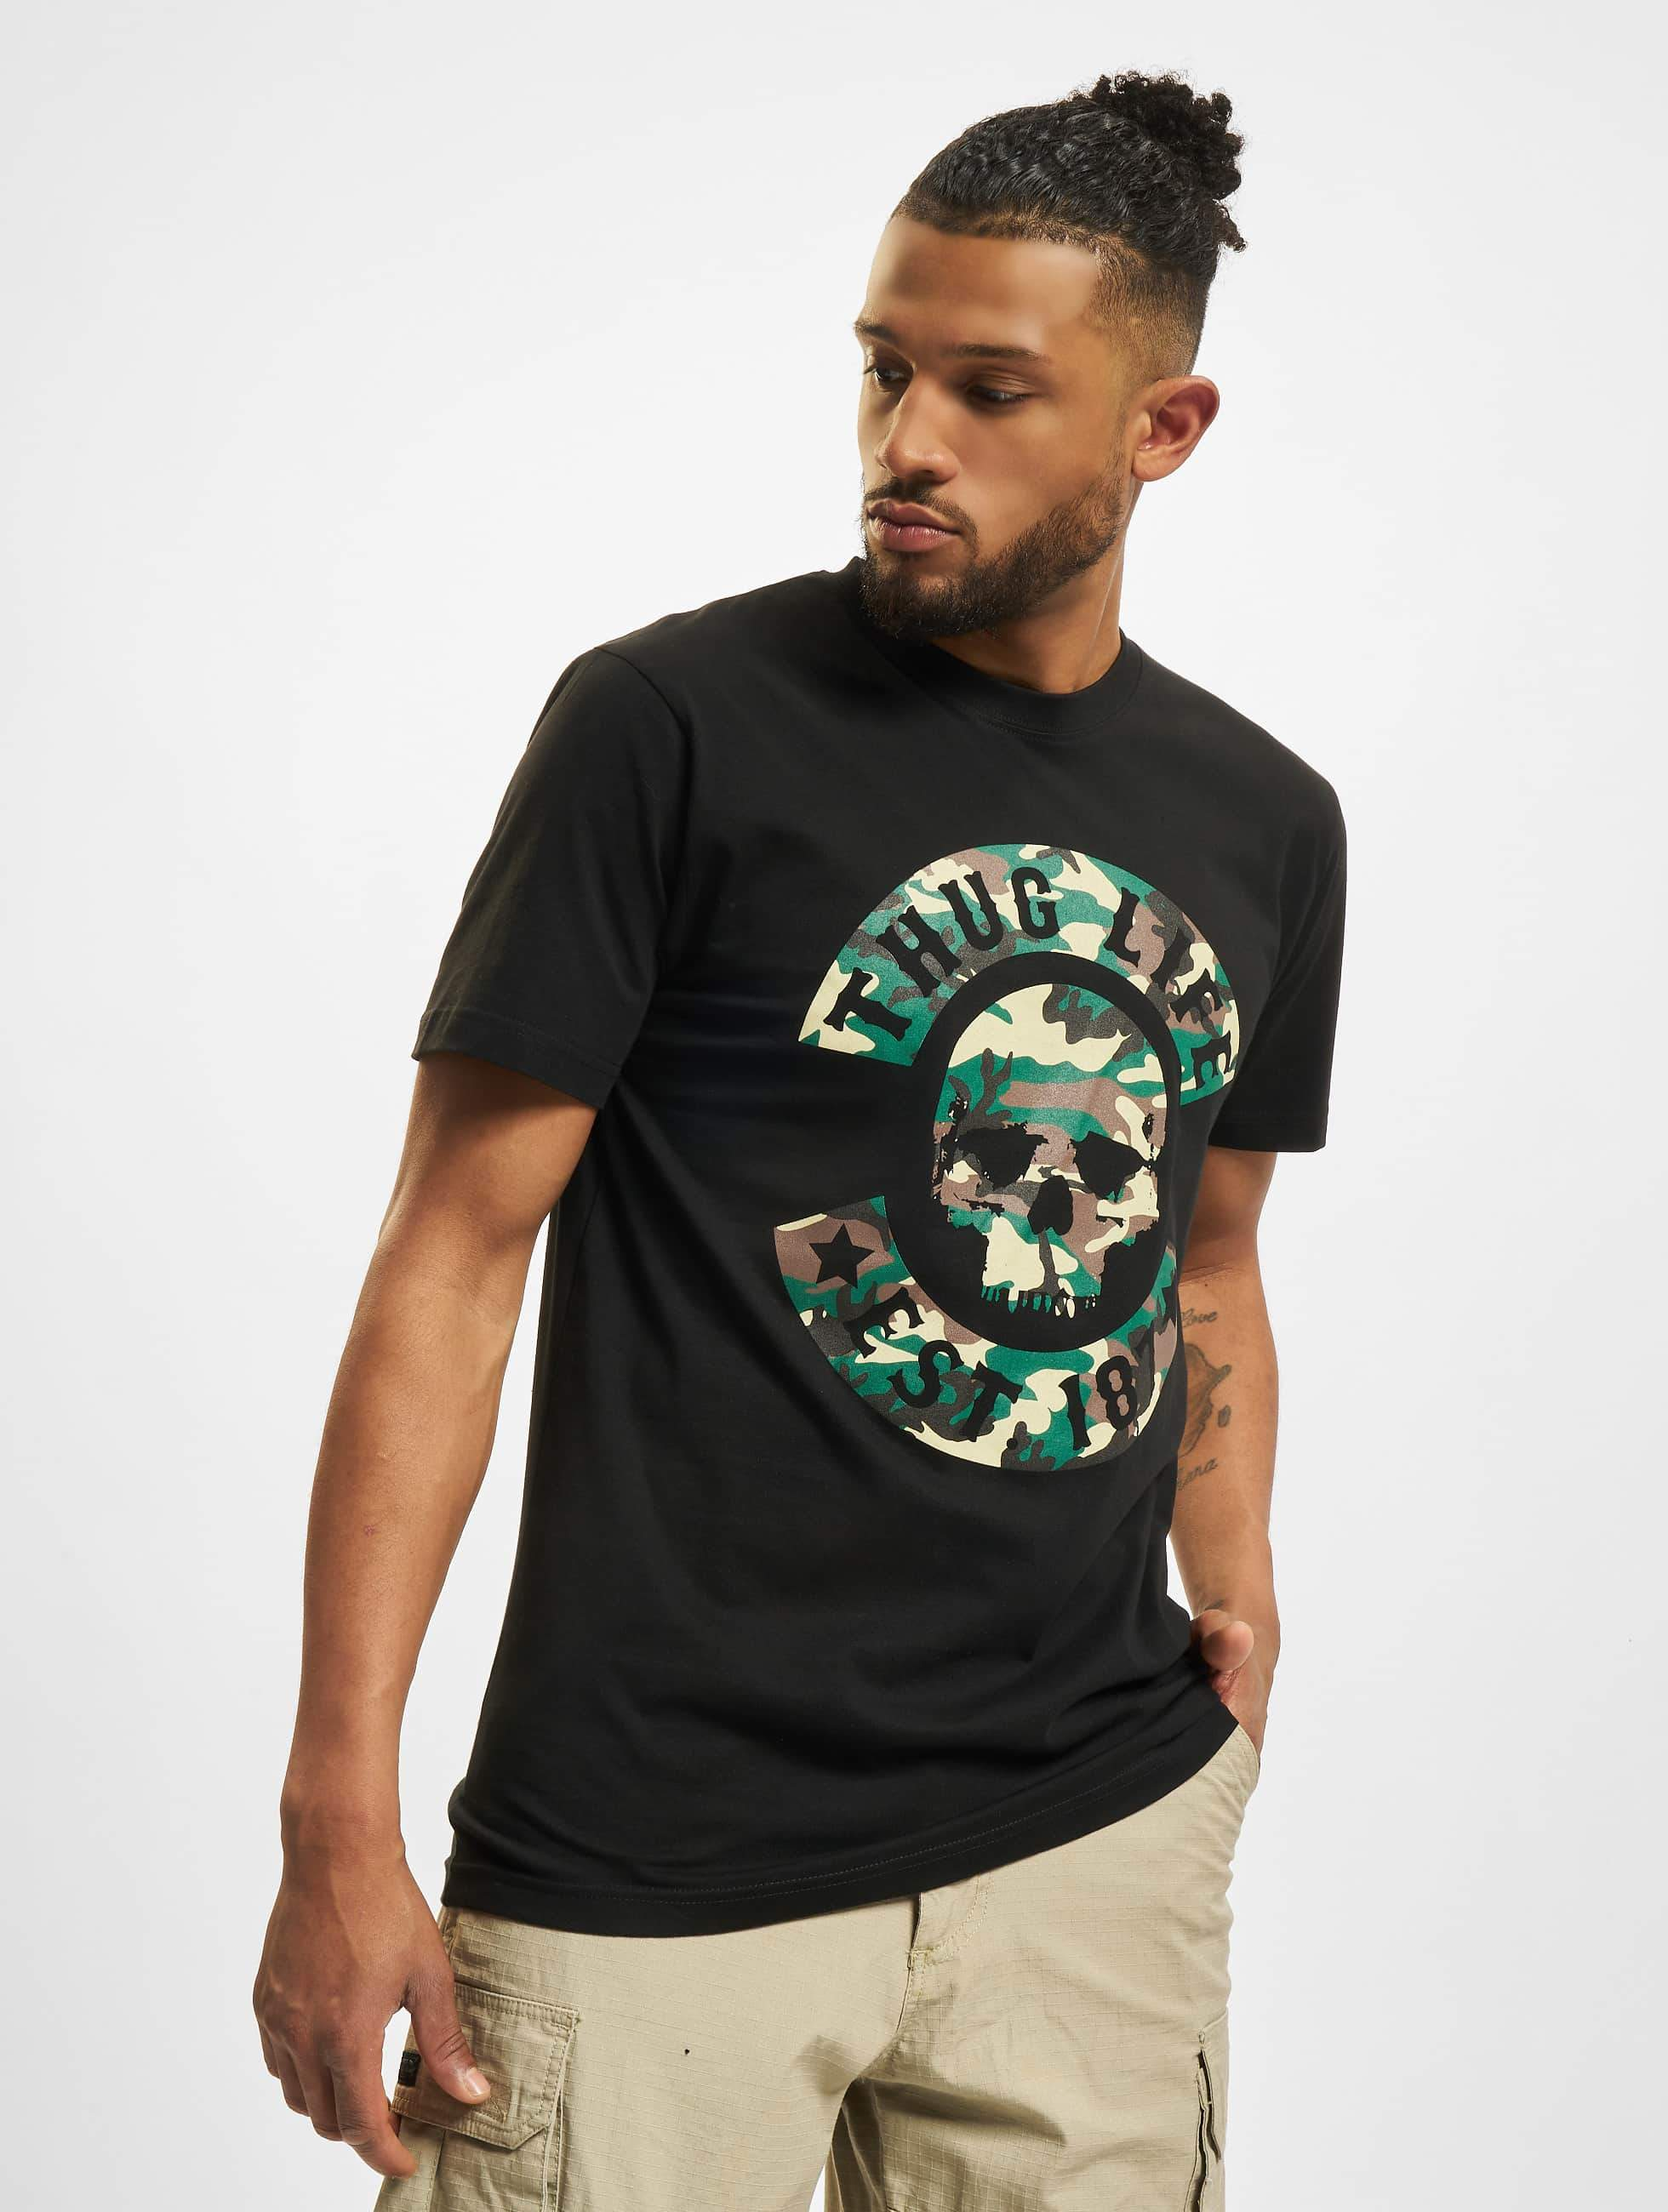 Thug Life / T-Shirt B. Camo in black L